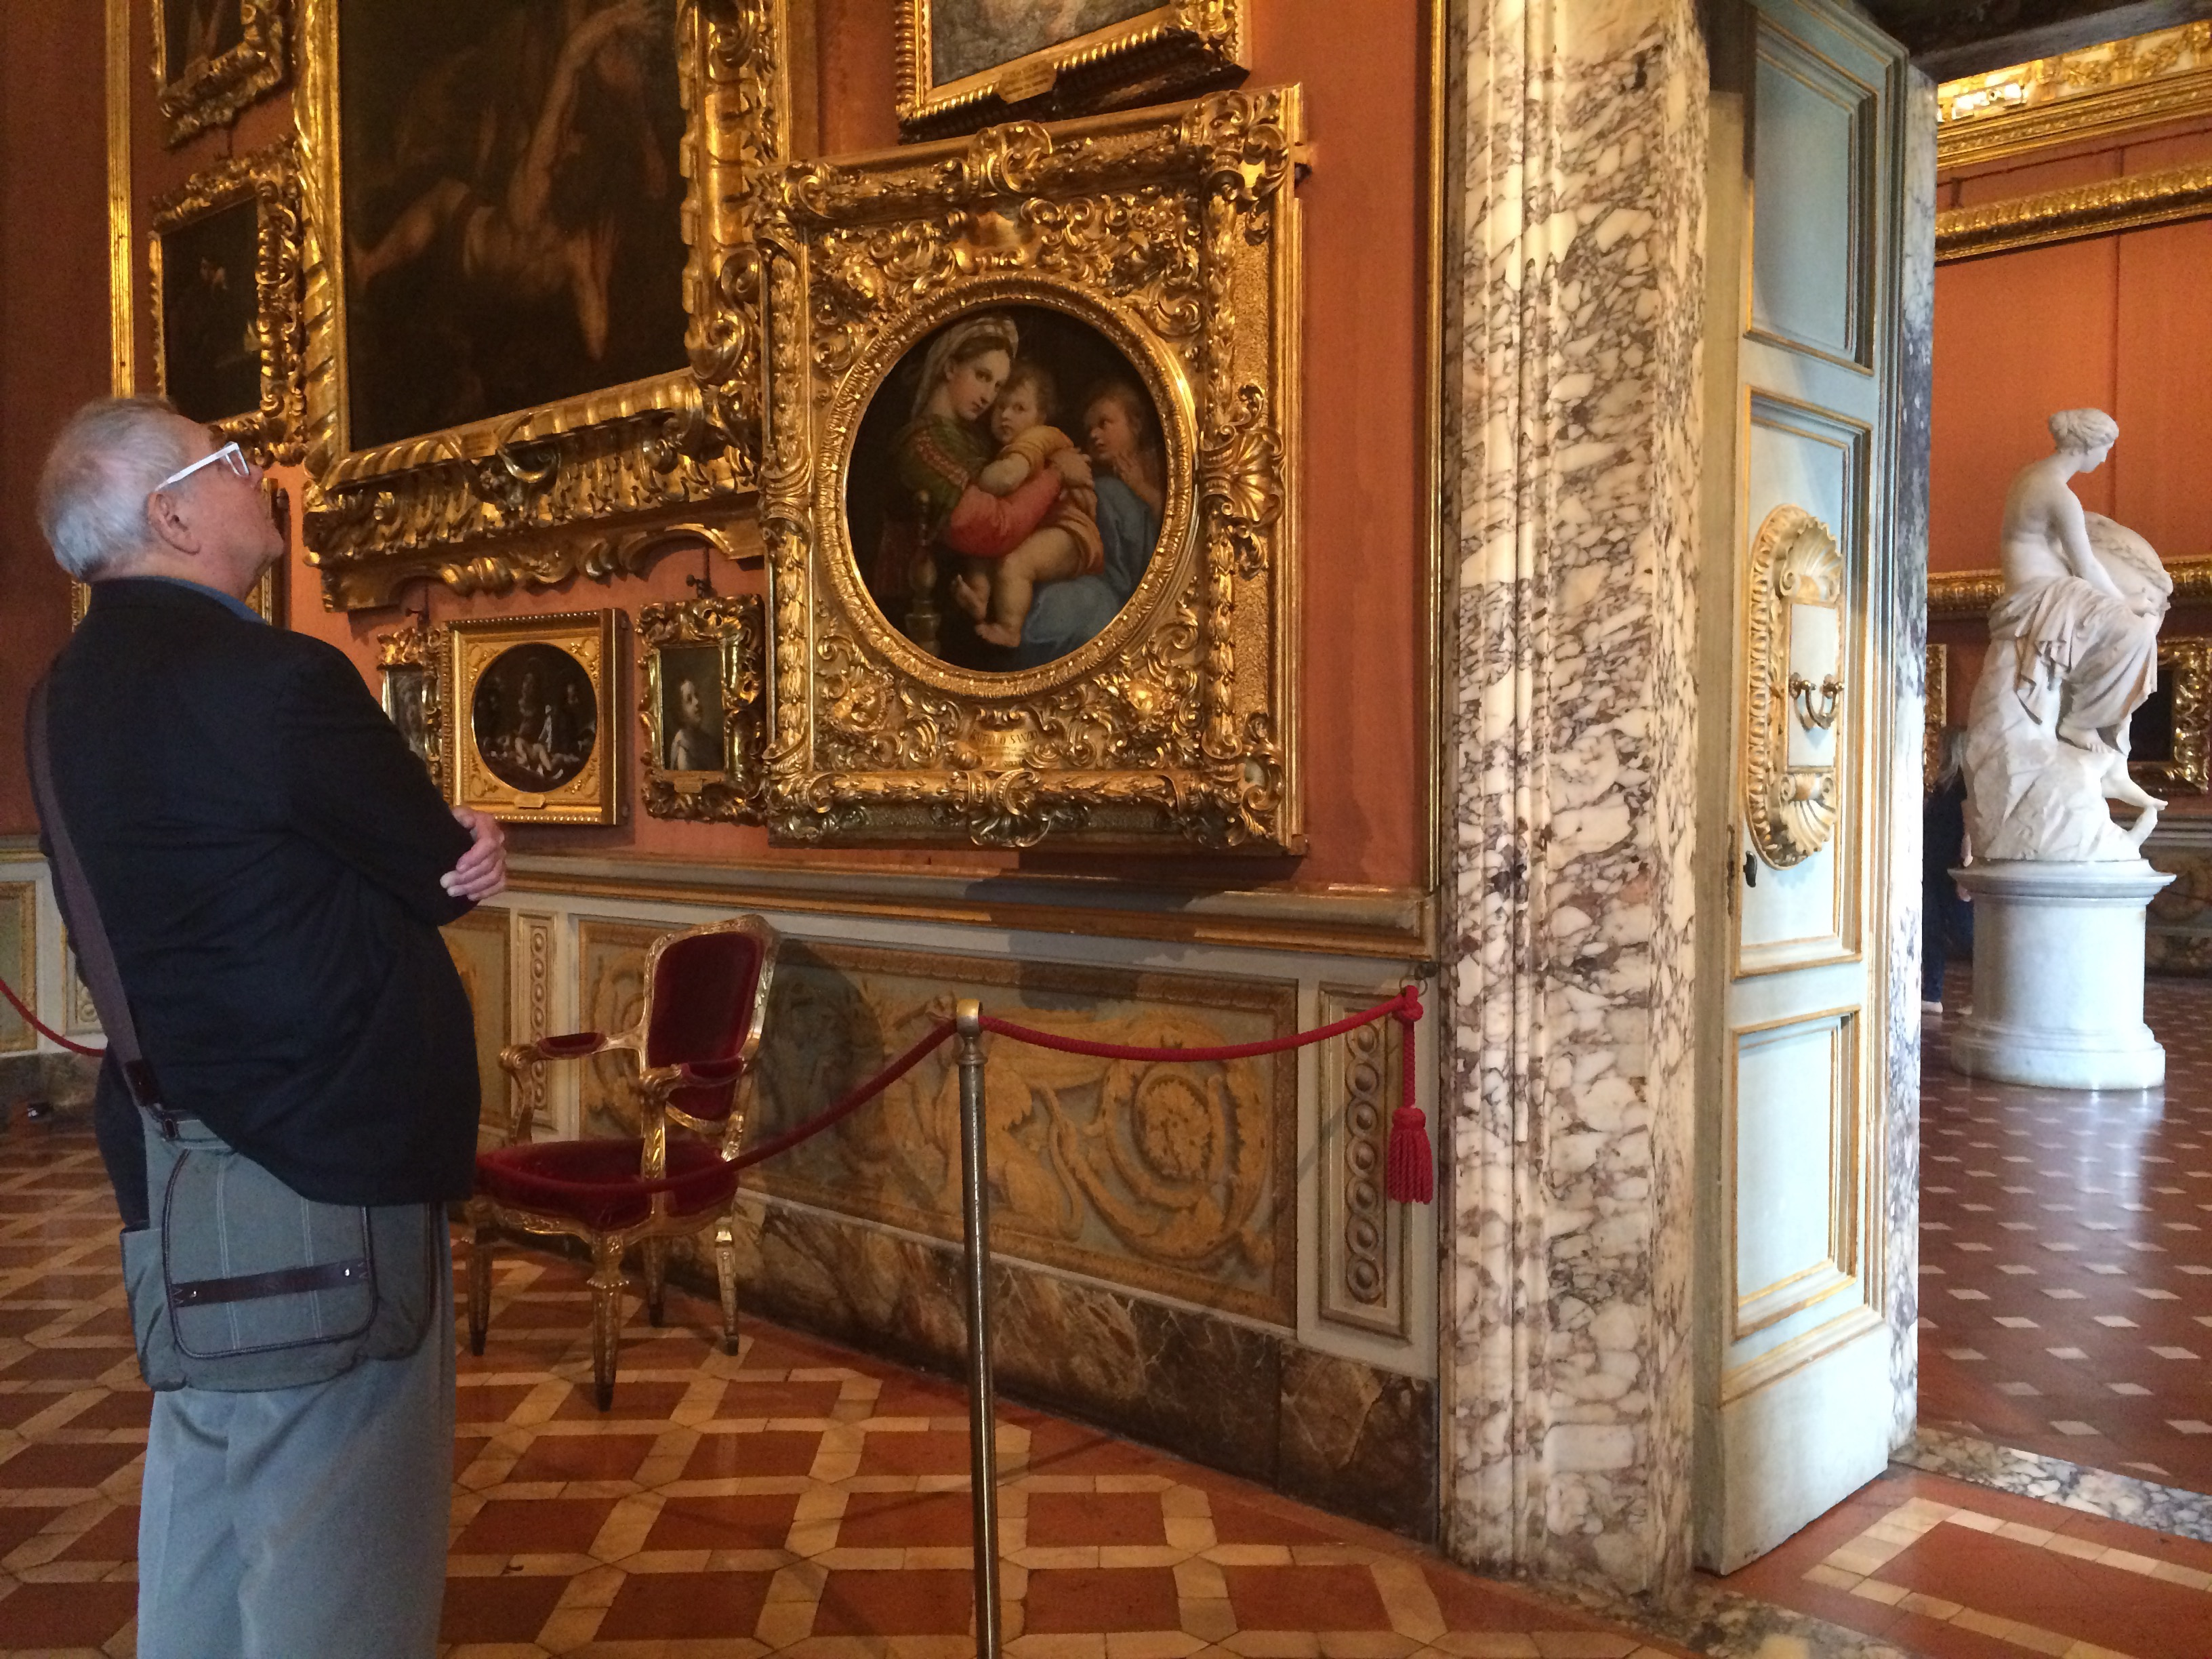 Earl in awe of Raphael's Madonna of the Chair in the Sala di Saturno gallery in Palazzo Pitti.